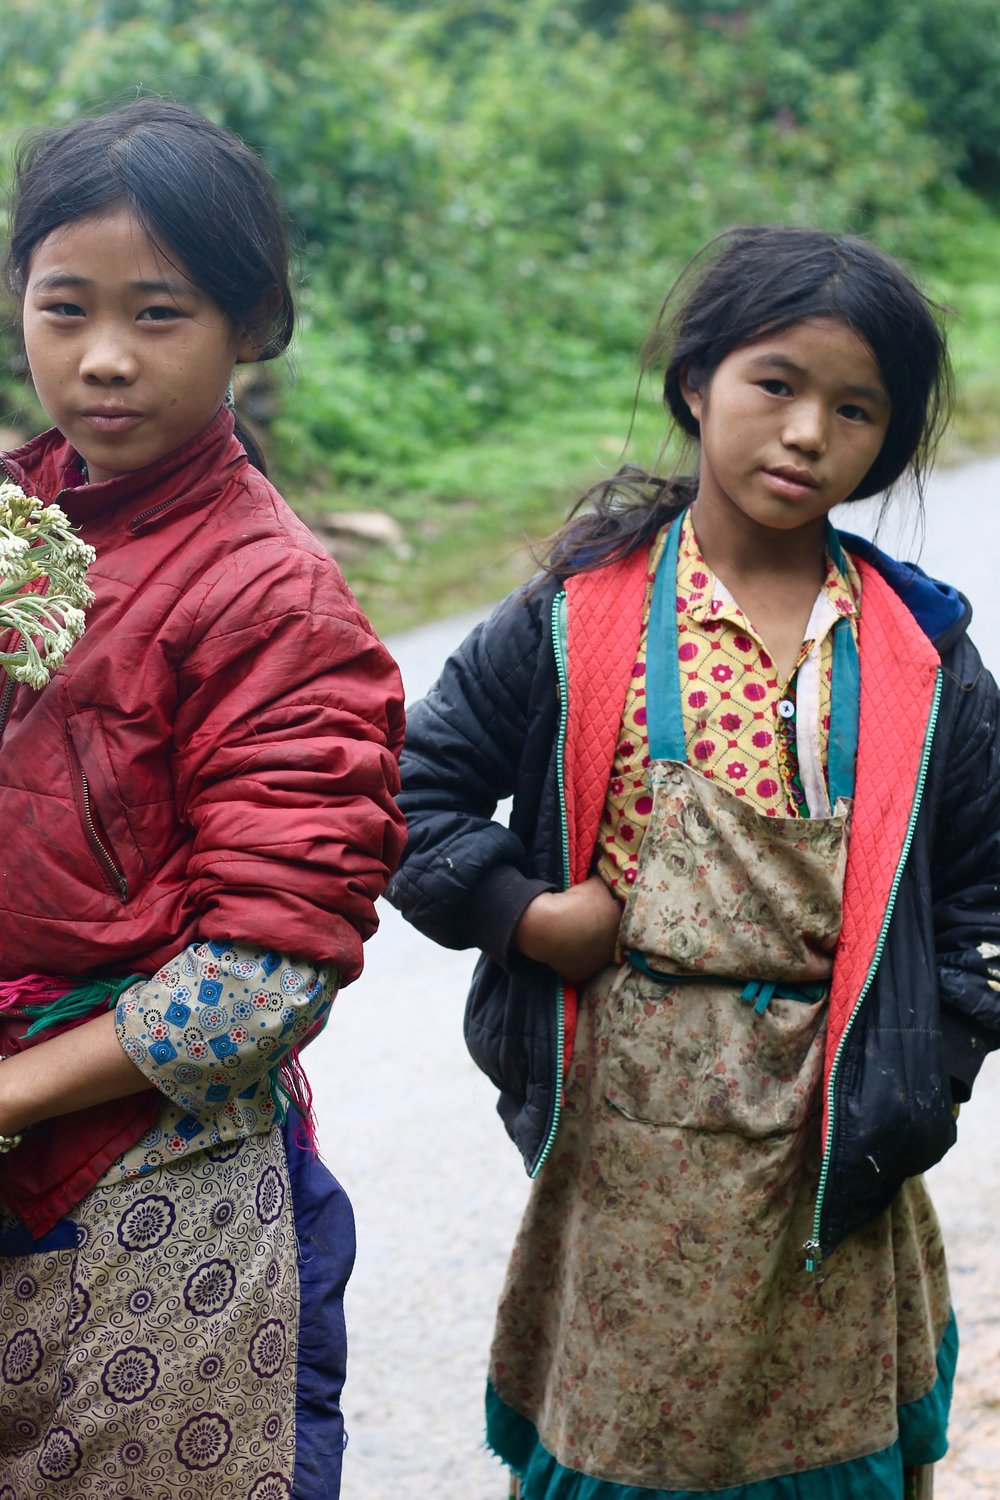 Local girls in the Northern province of Ha Giang, one of my favourite places in the country and home to dozens of ethnic minorities.